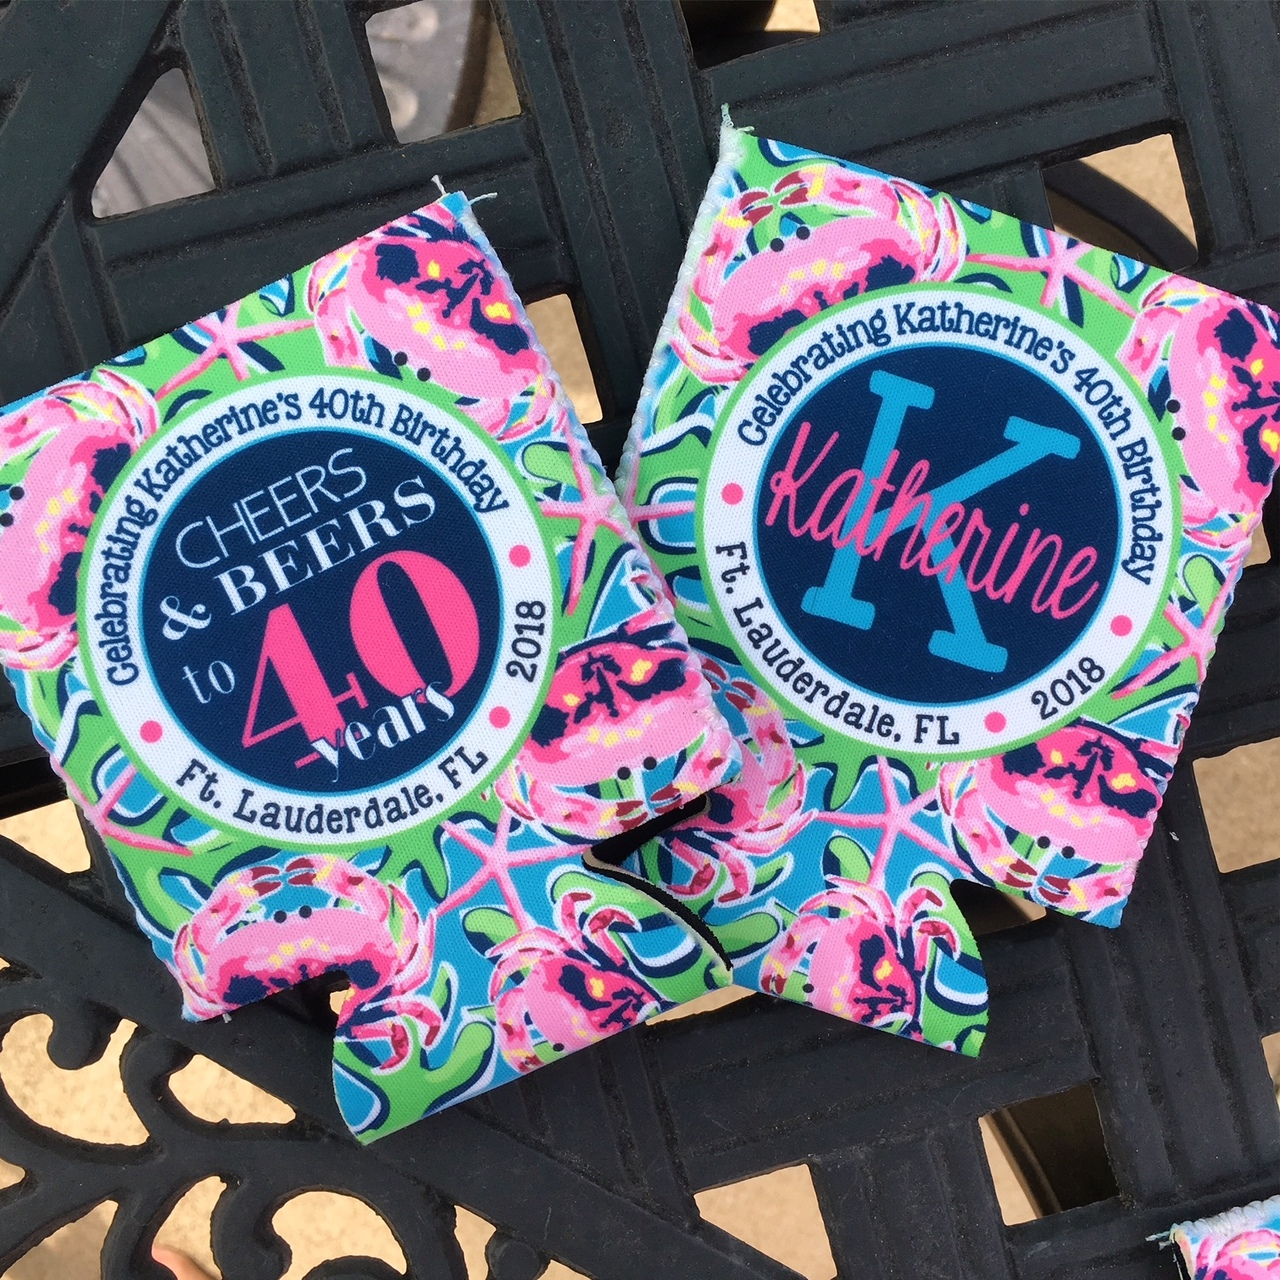 Cheers and Beers Birthday Beach Koozies - pink crabs - flat